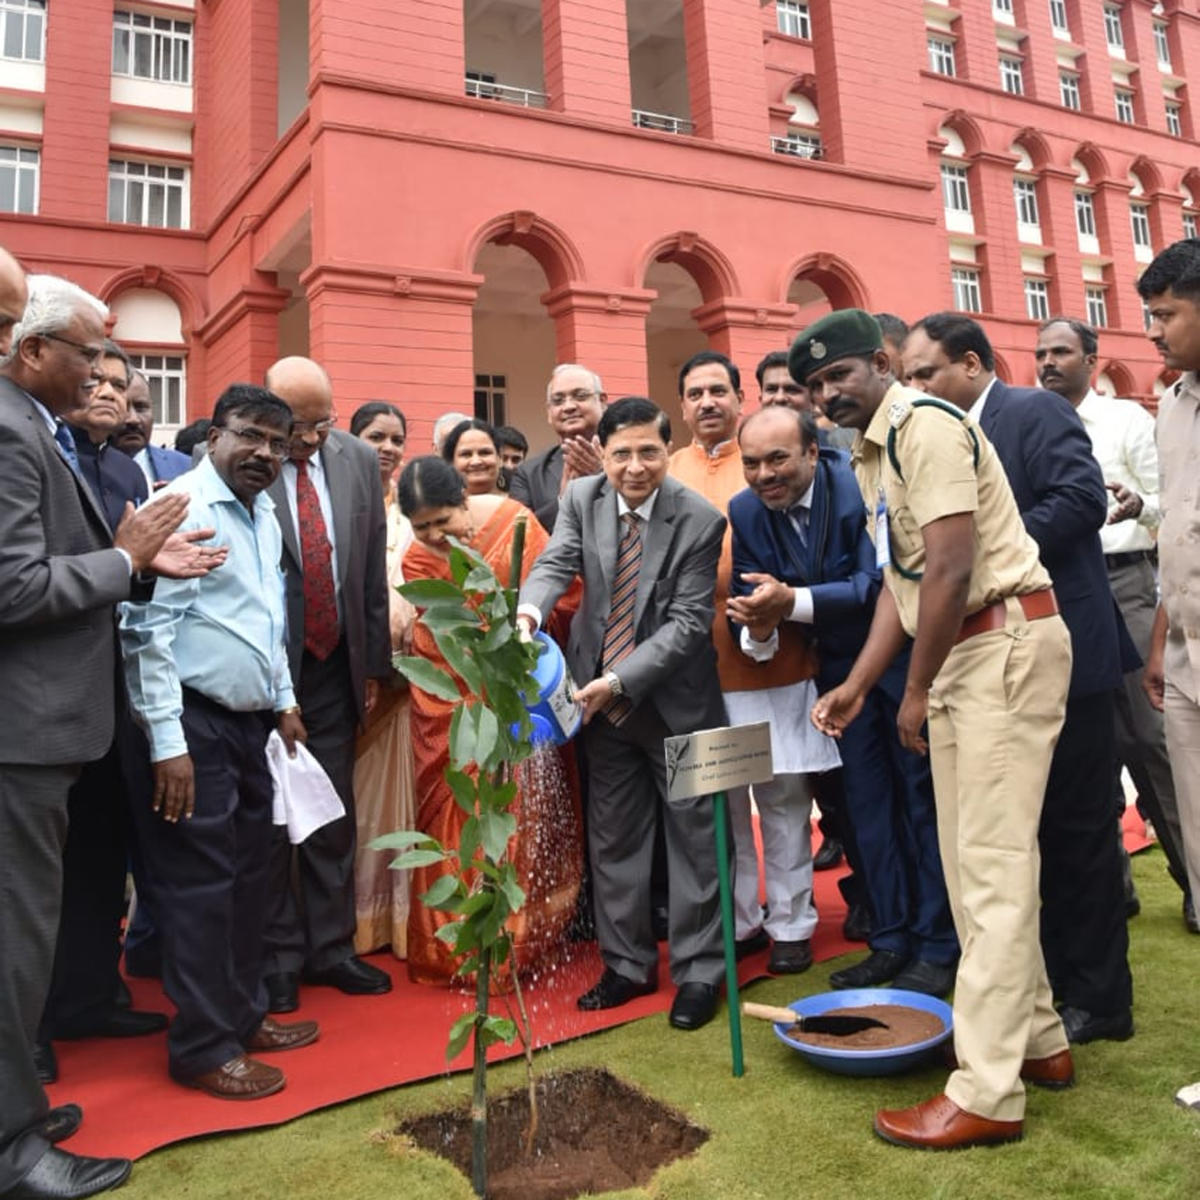 Chief Justice of India Dipak Misra waters a plant during the inauguration of the new Court Complex in Hubballi on Sunday.